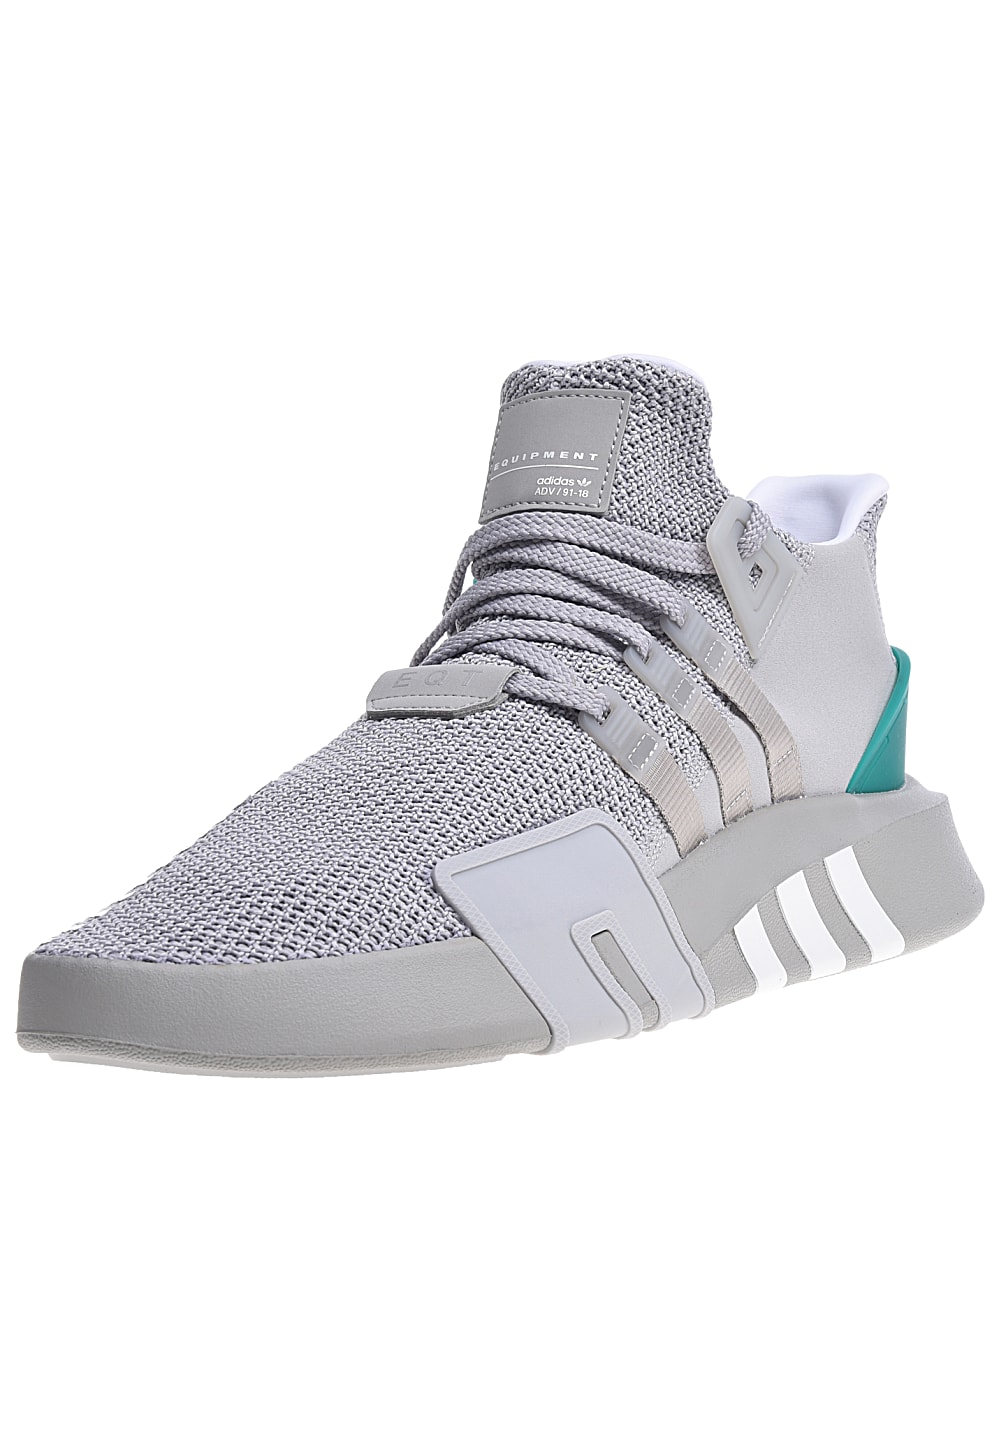 ADIDAS ORIGINALS Eqt Bask Adv Sneakers for Men Grey